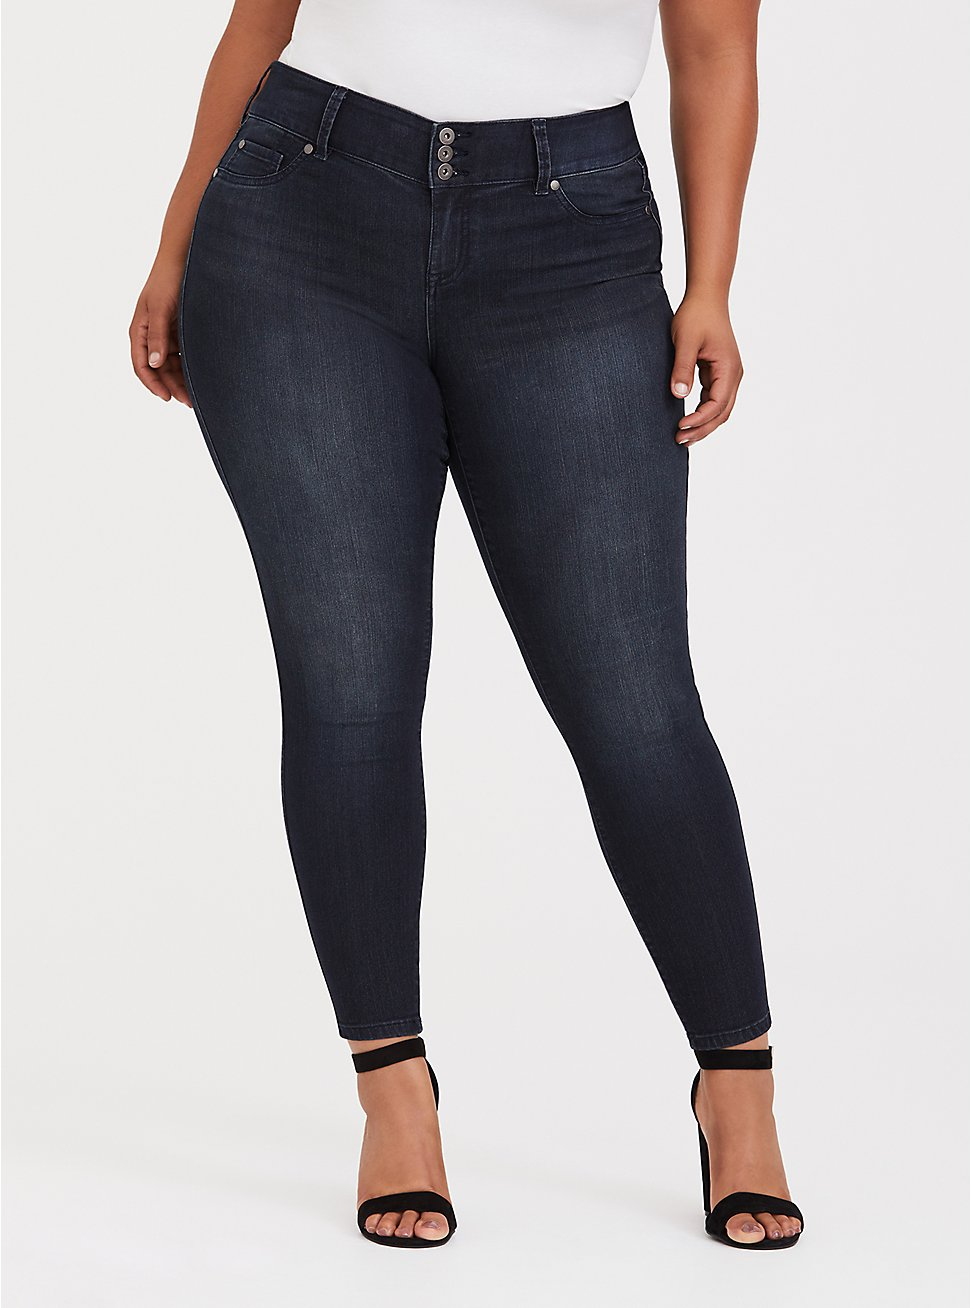 Jegging - Super Stretch Dark Wash, MIDNIGHT, hi-res